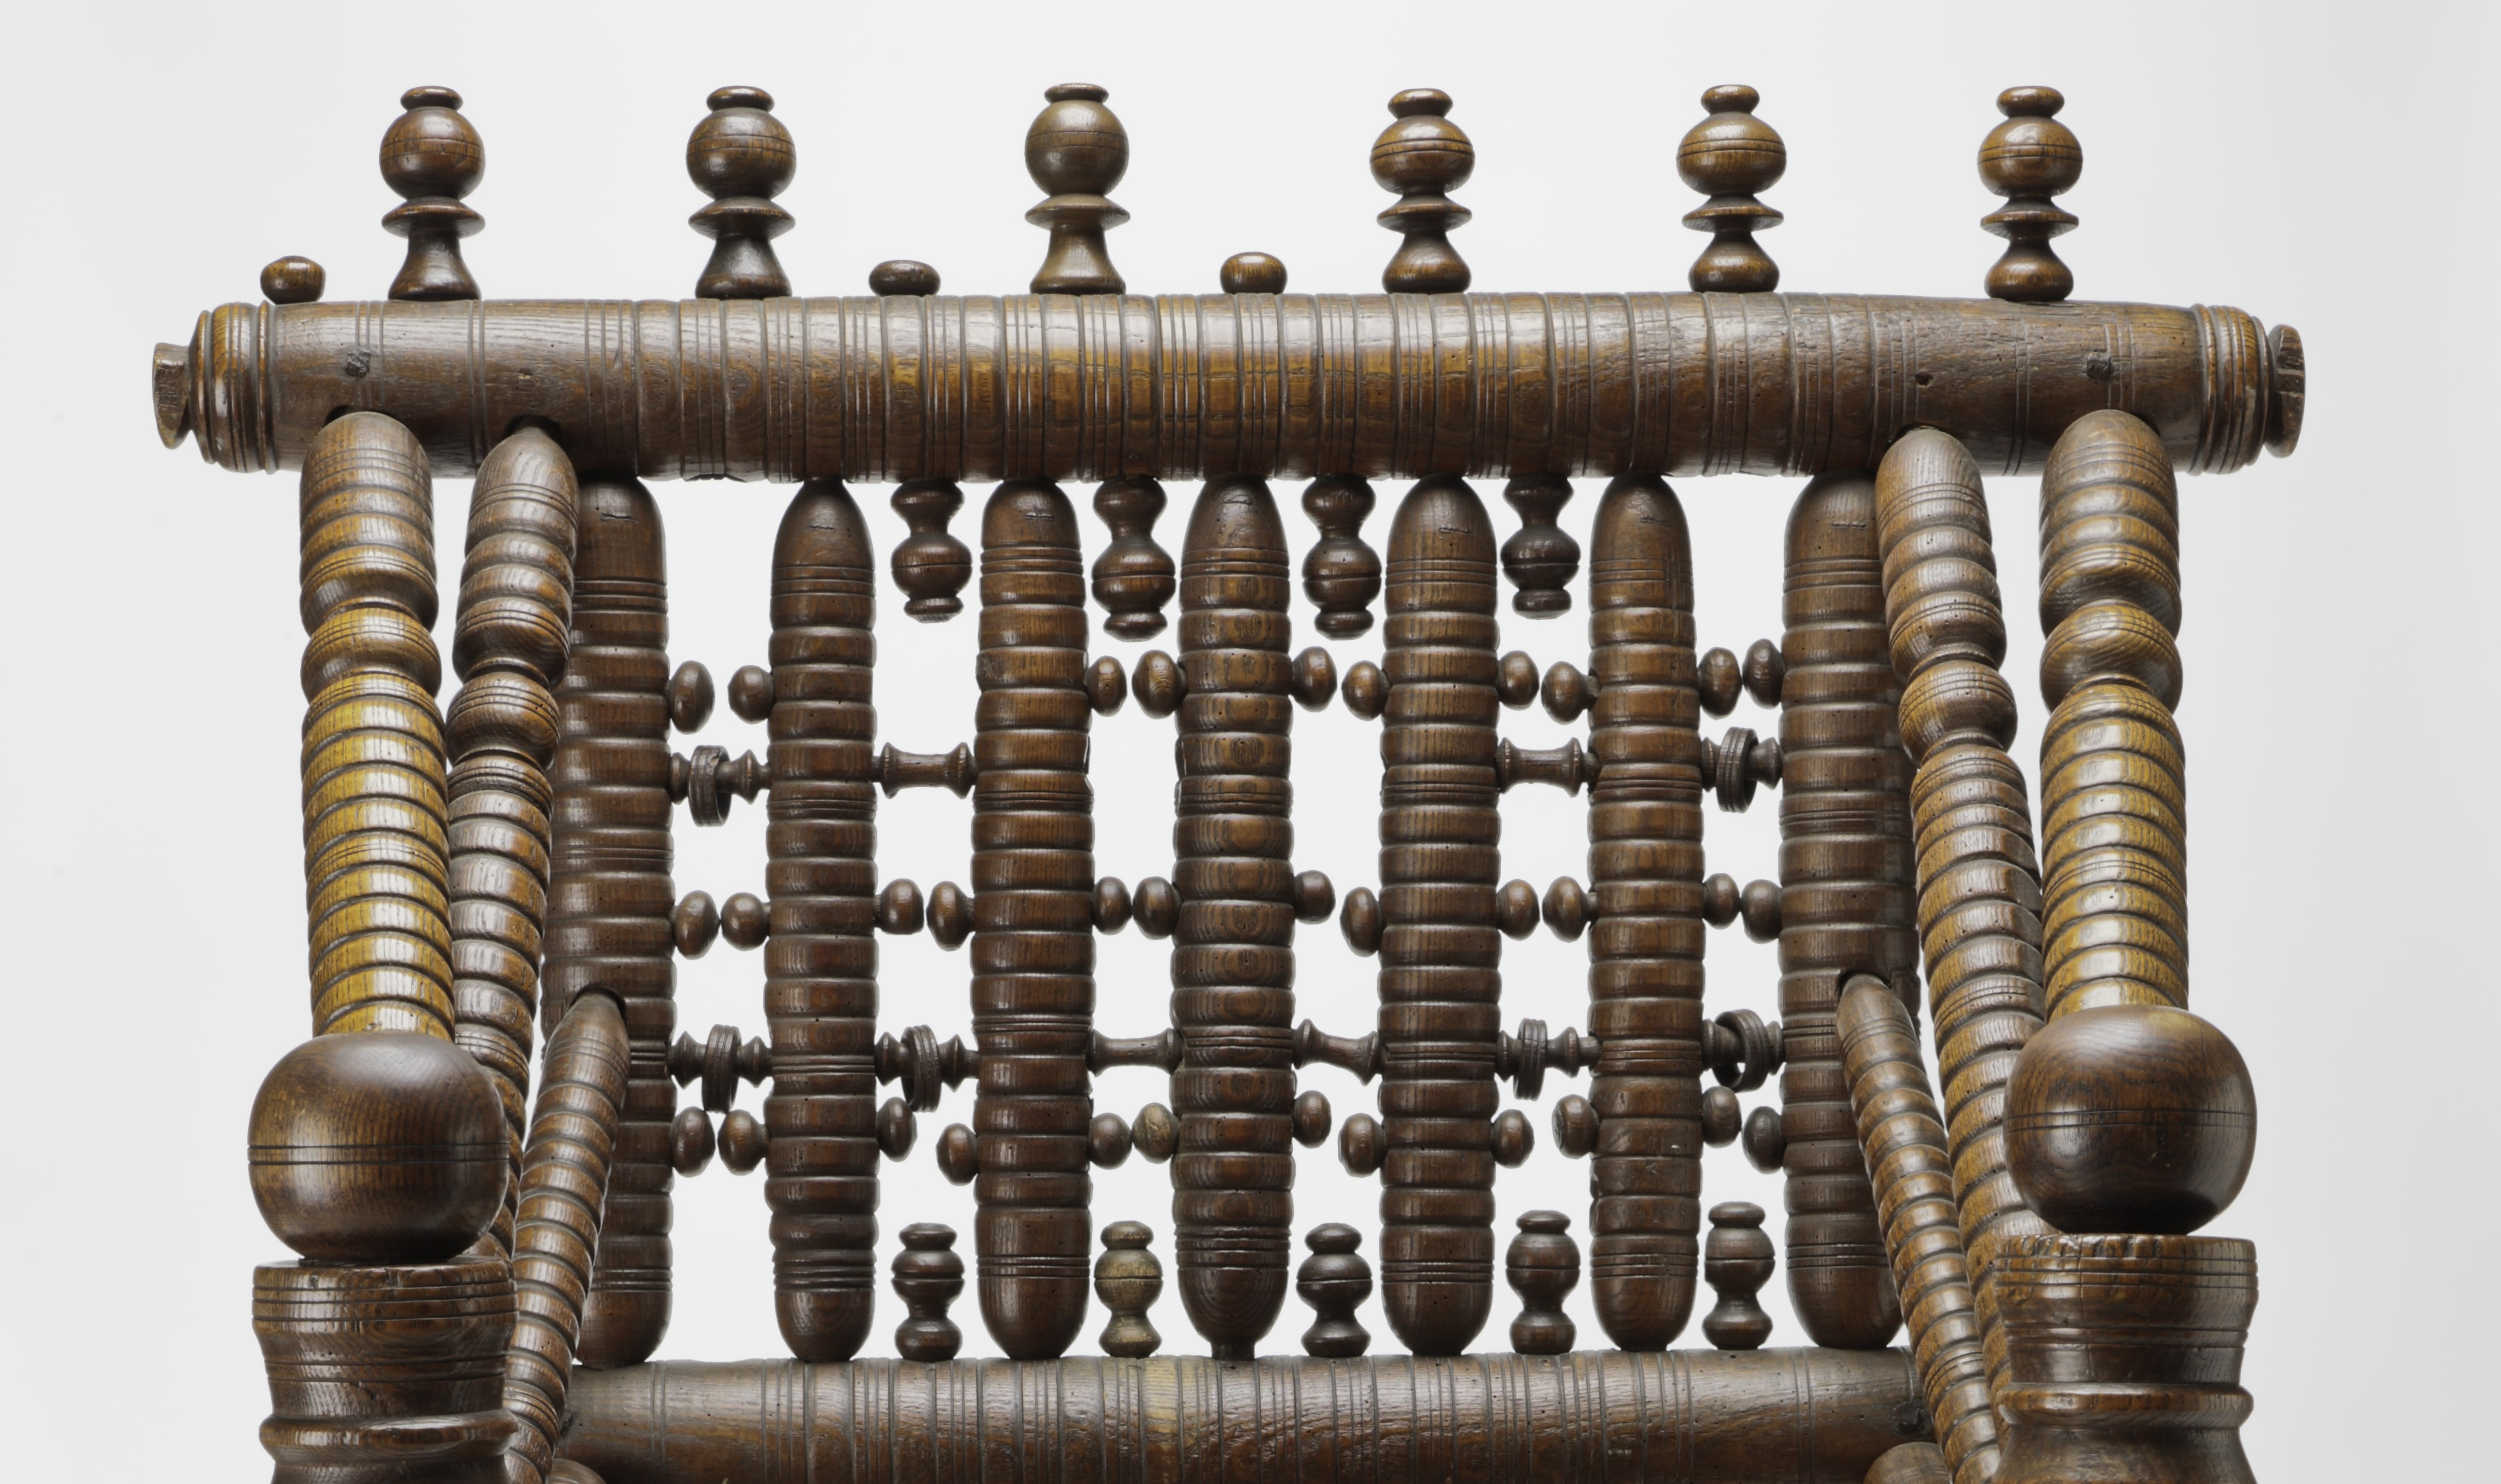 This image shows the back of a wooden three-legged chair. The most prominent elements of the chair back are six vertical spindles topped by a thick horizontal spindle. Atop this are six carved, vertical decorative pieces. Smaller pieces of similar shape are interspersed vertically and horizontally along the back. There are several gaps along the back.